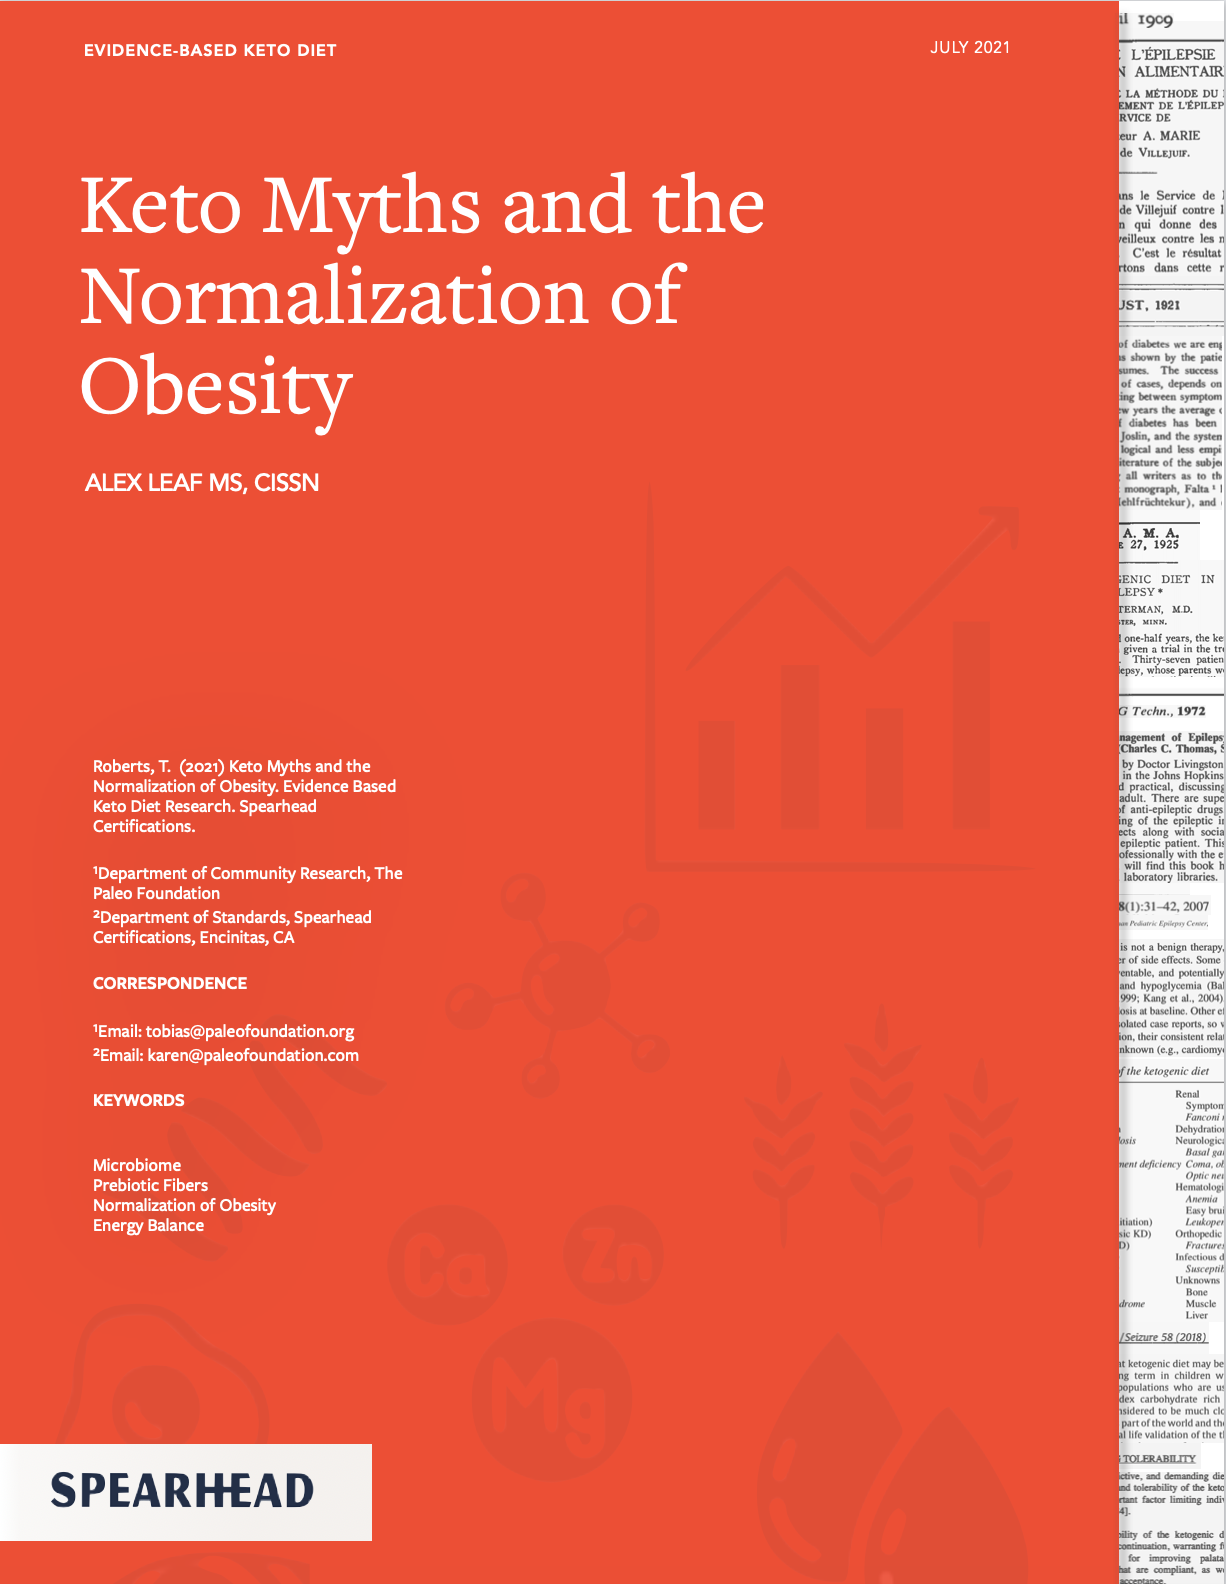 Alex Leaf: Keto Myths and the Normalization of Obesity